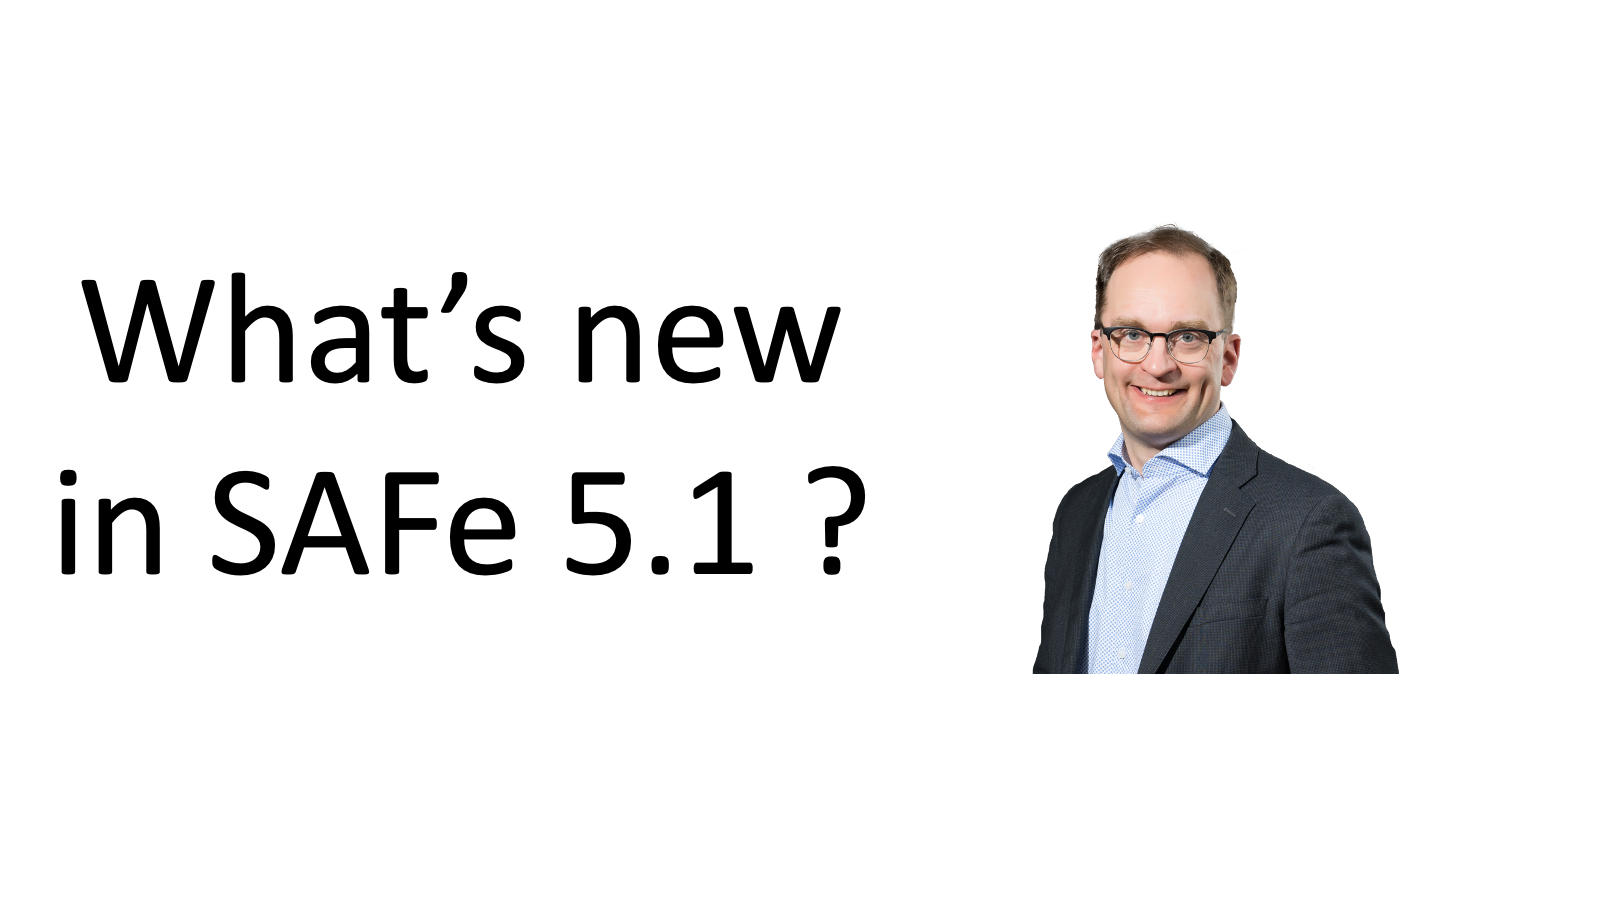 SAFe updated to 5.1